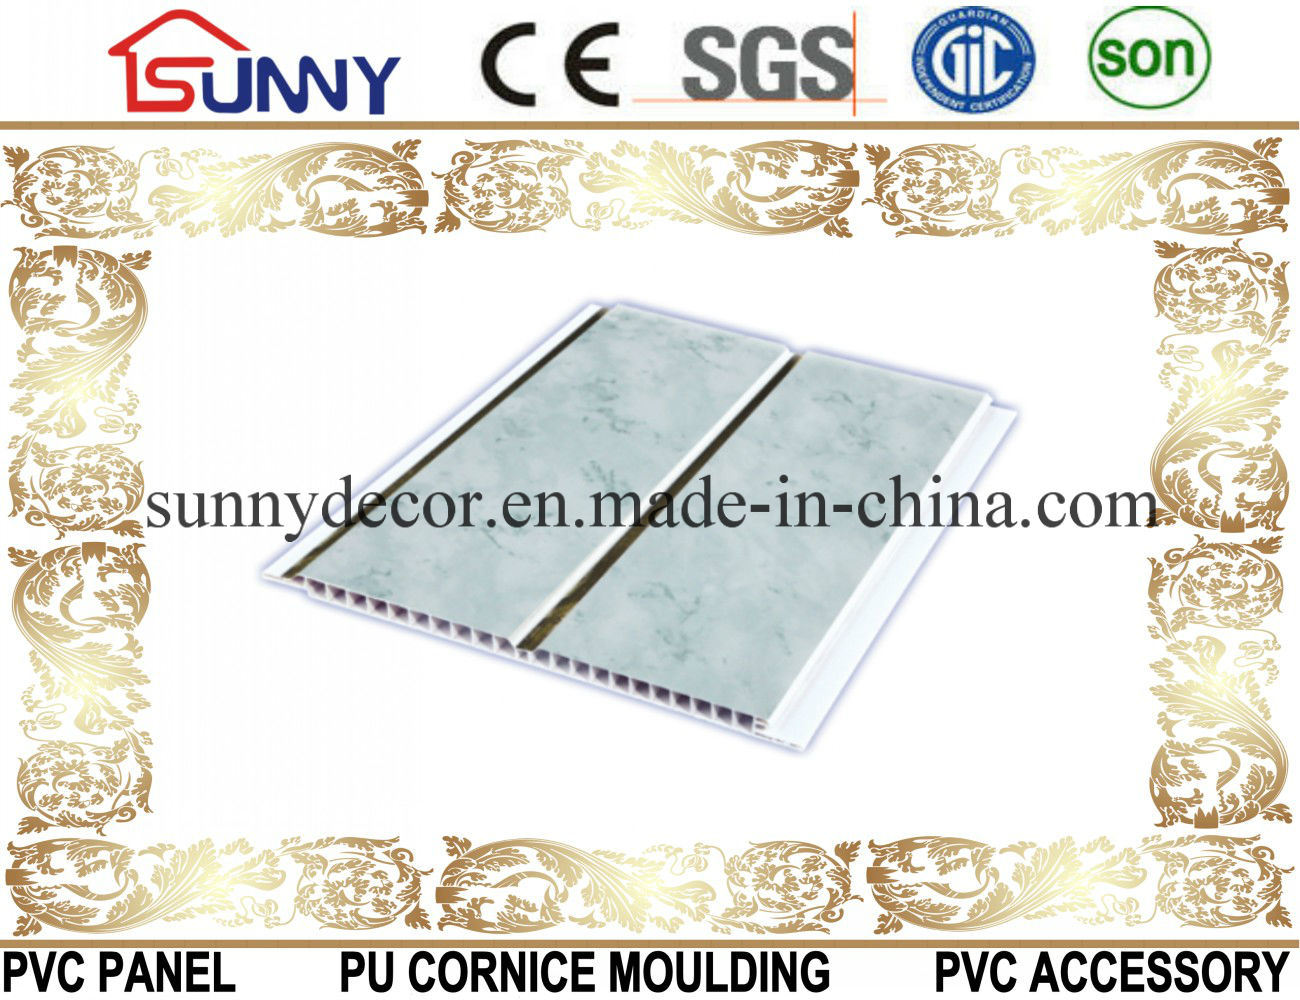 Transfer Printing PVC Panel Used for Ceiling and Wall Decoration